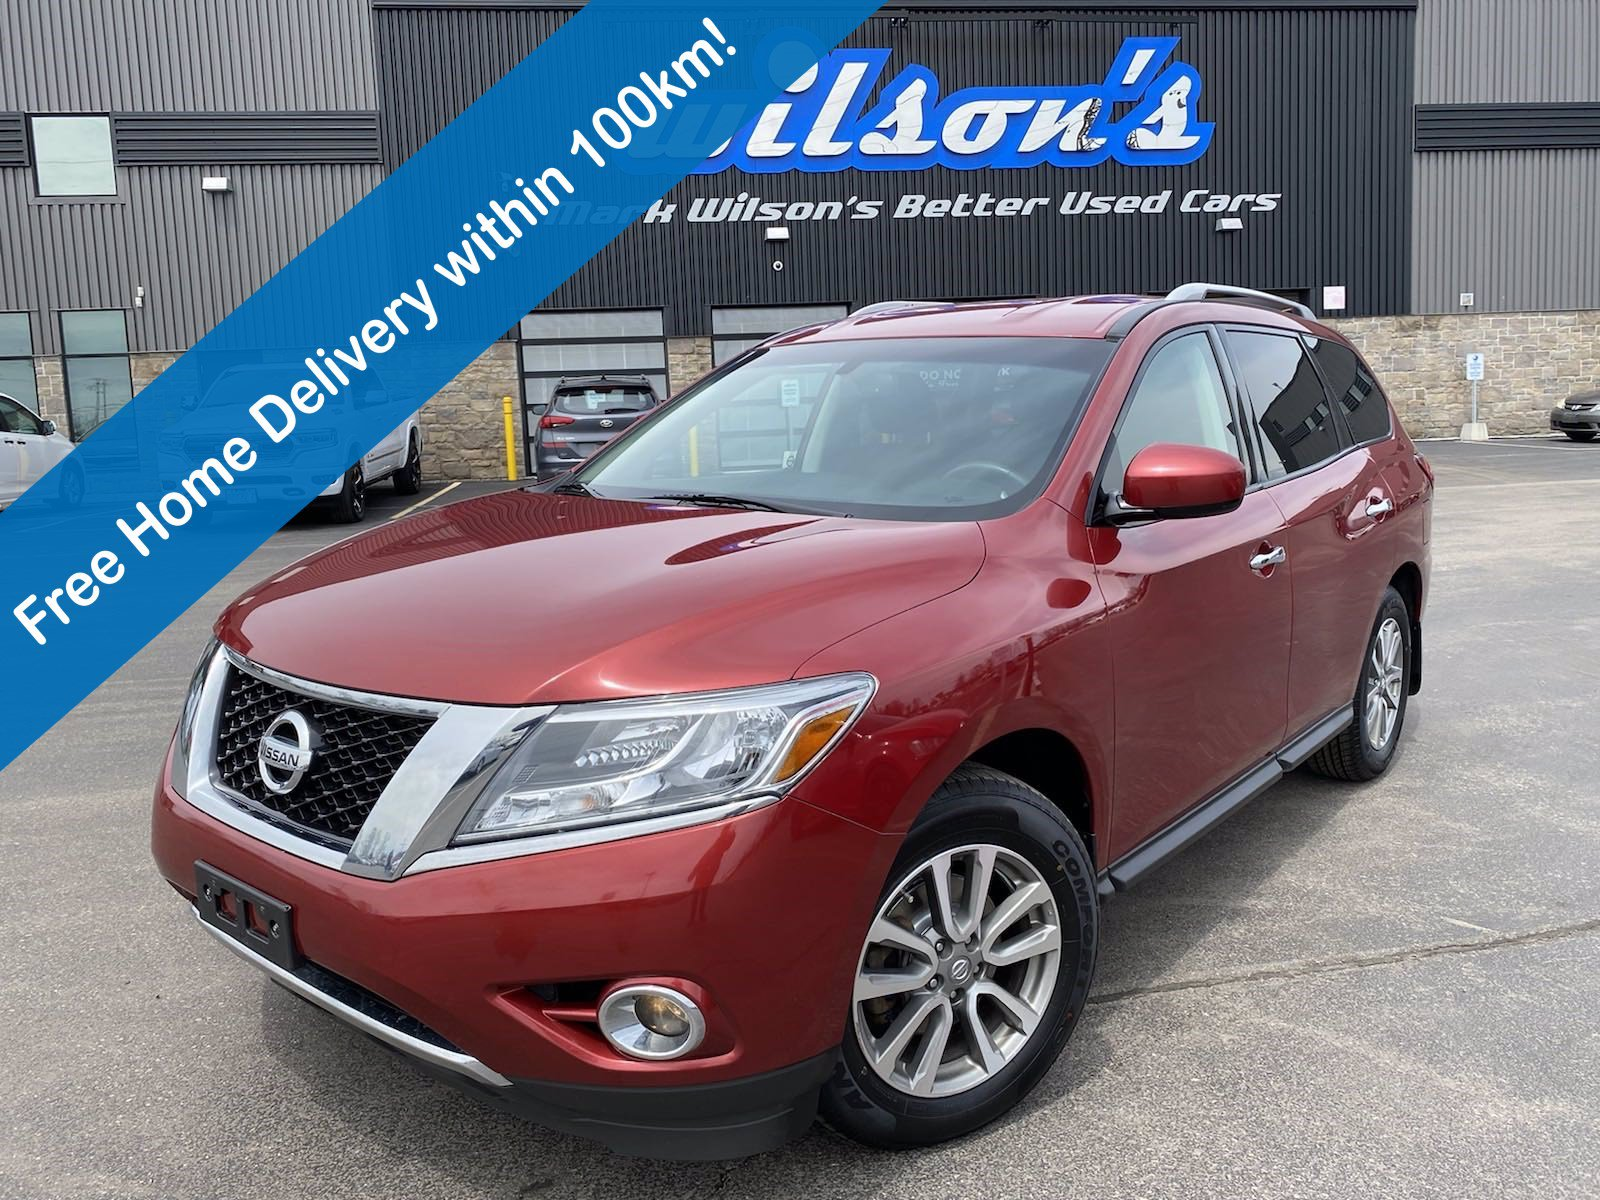 Certified Pre-Owned 2016 Nissan Pathfinder SV 4x4, Heated Steering & Seats, Power Liftgate, Rear Camera, Power Seat, Bluetooth and more!